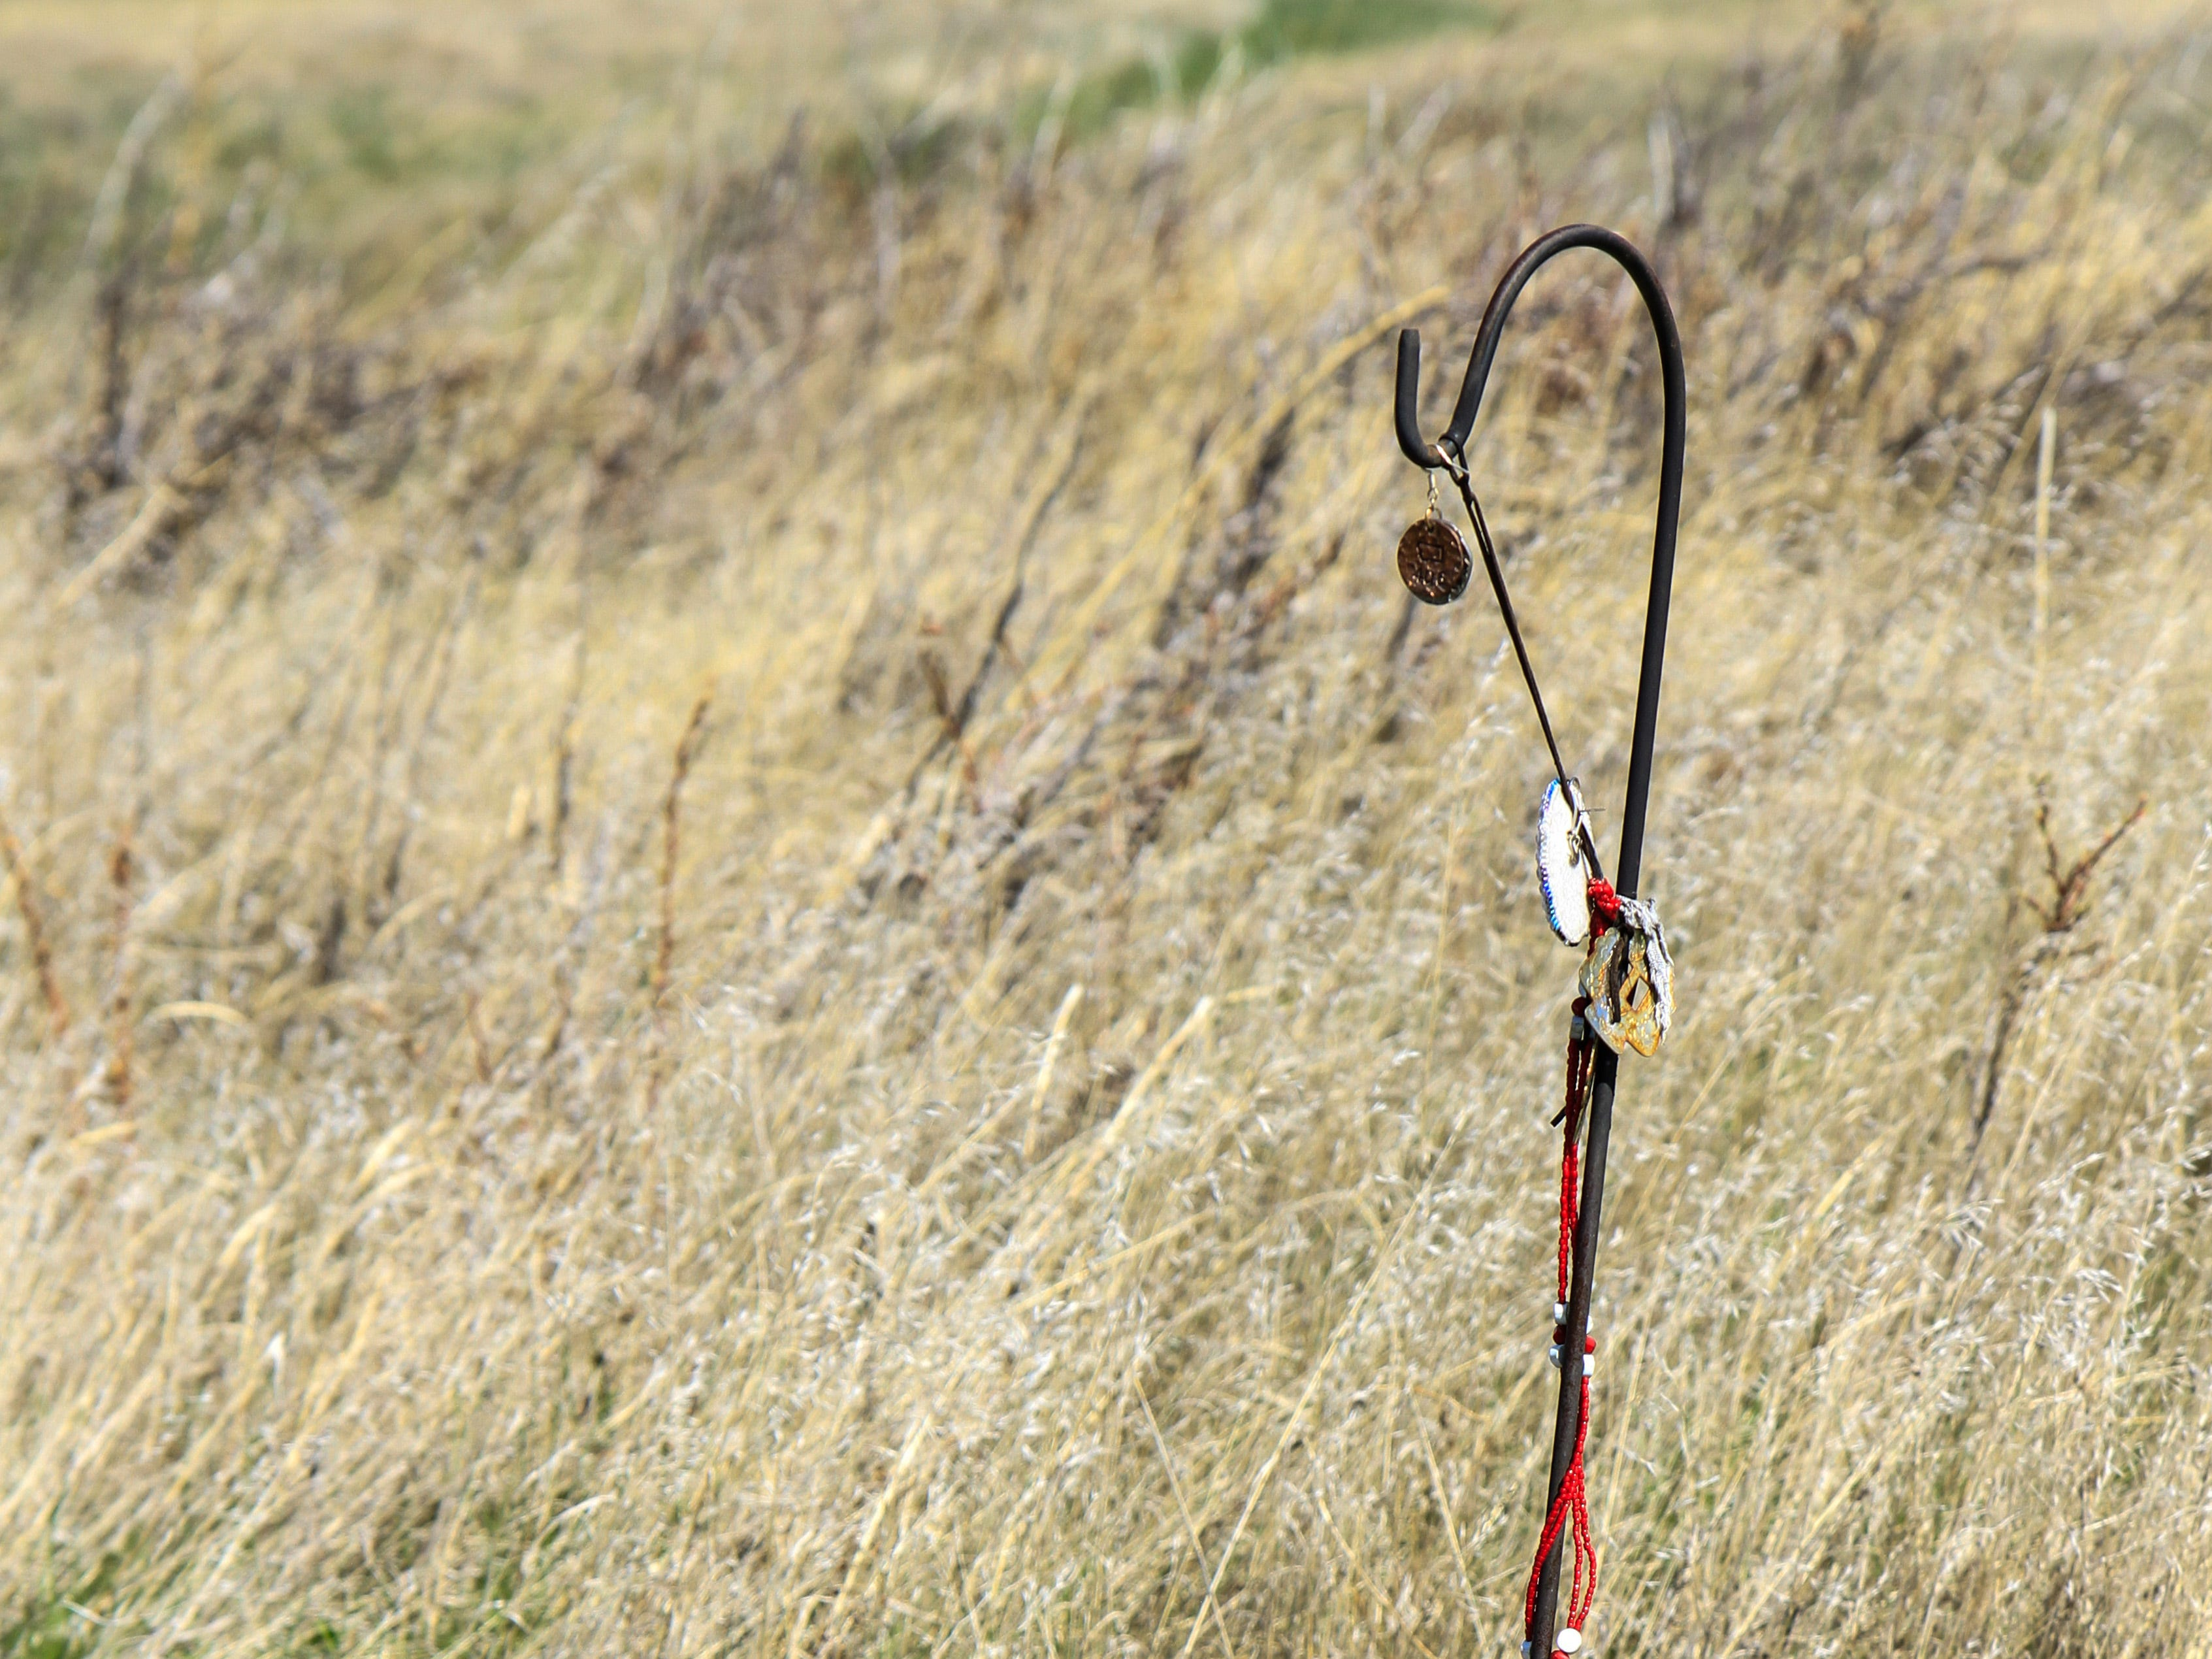 Nez Perce offerings from their ancestors are left along the Bear Paw Battlefield.